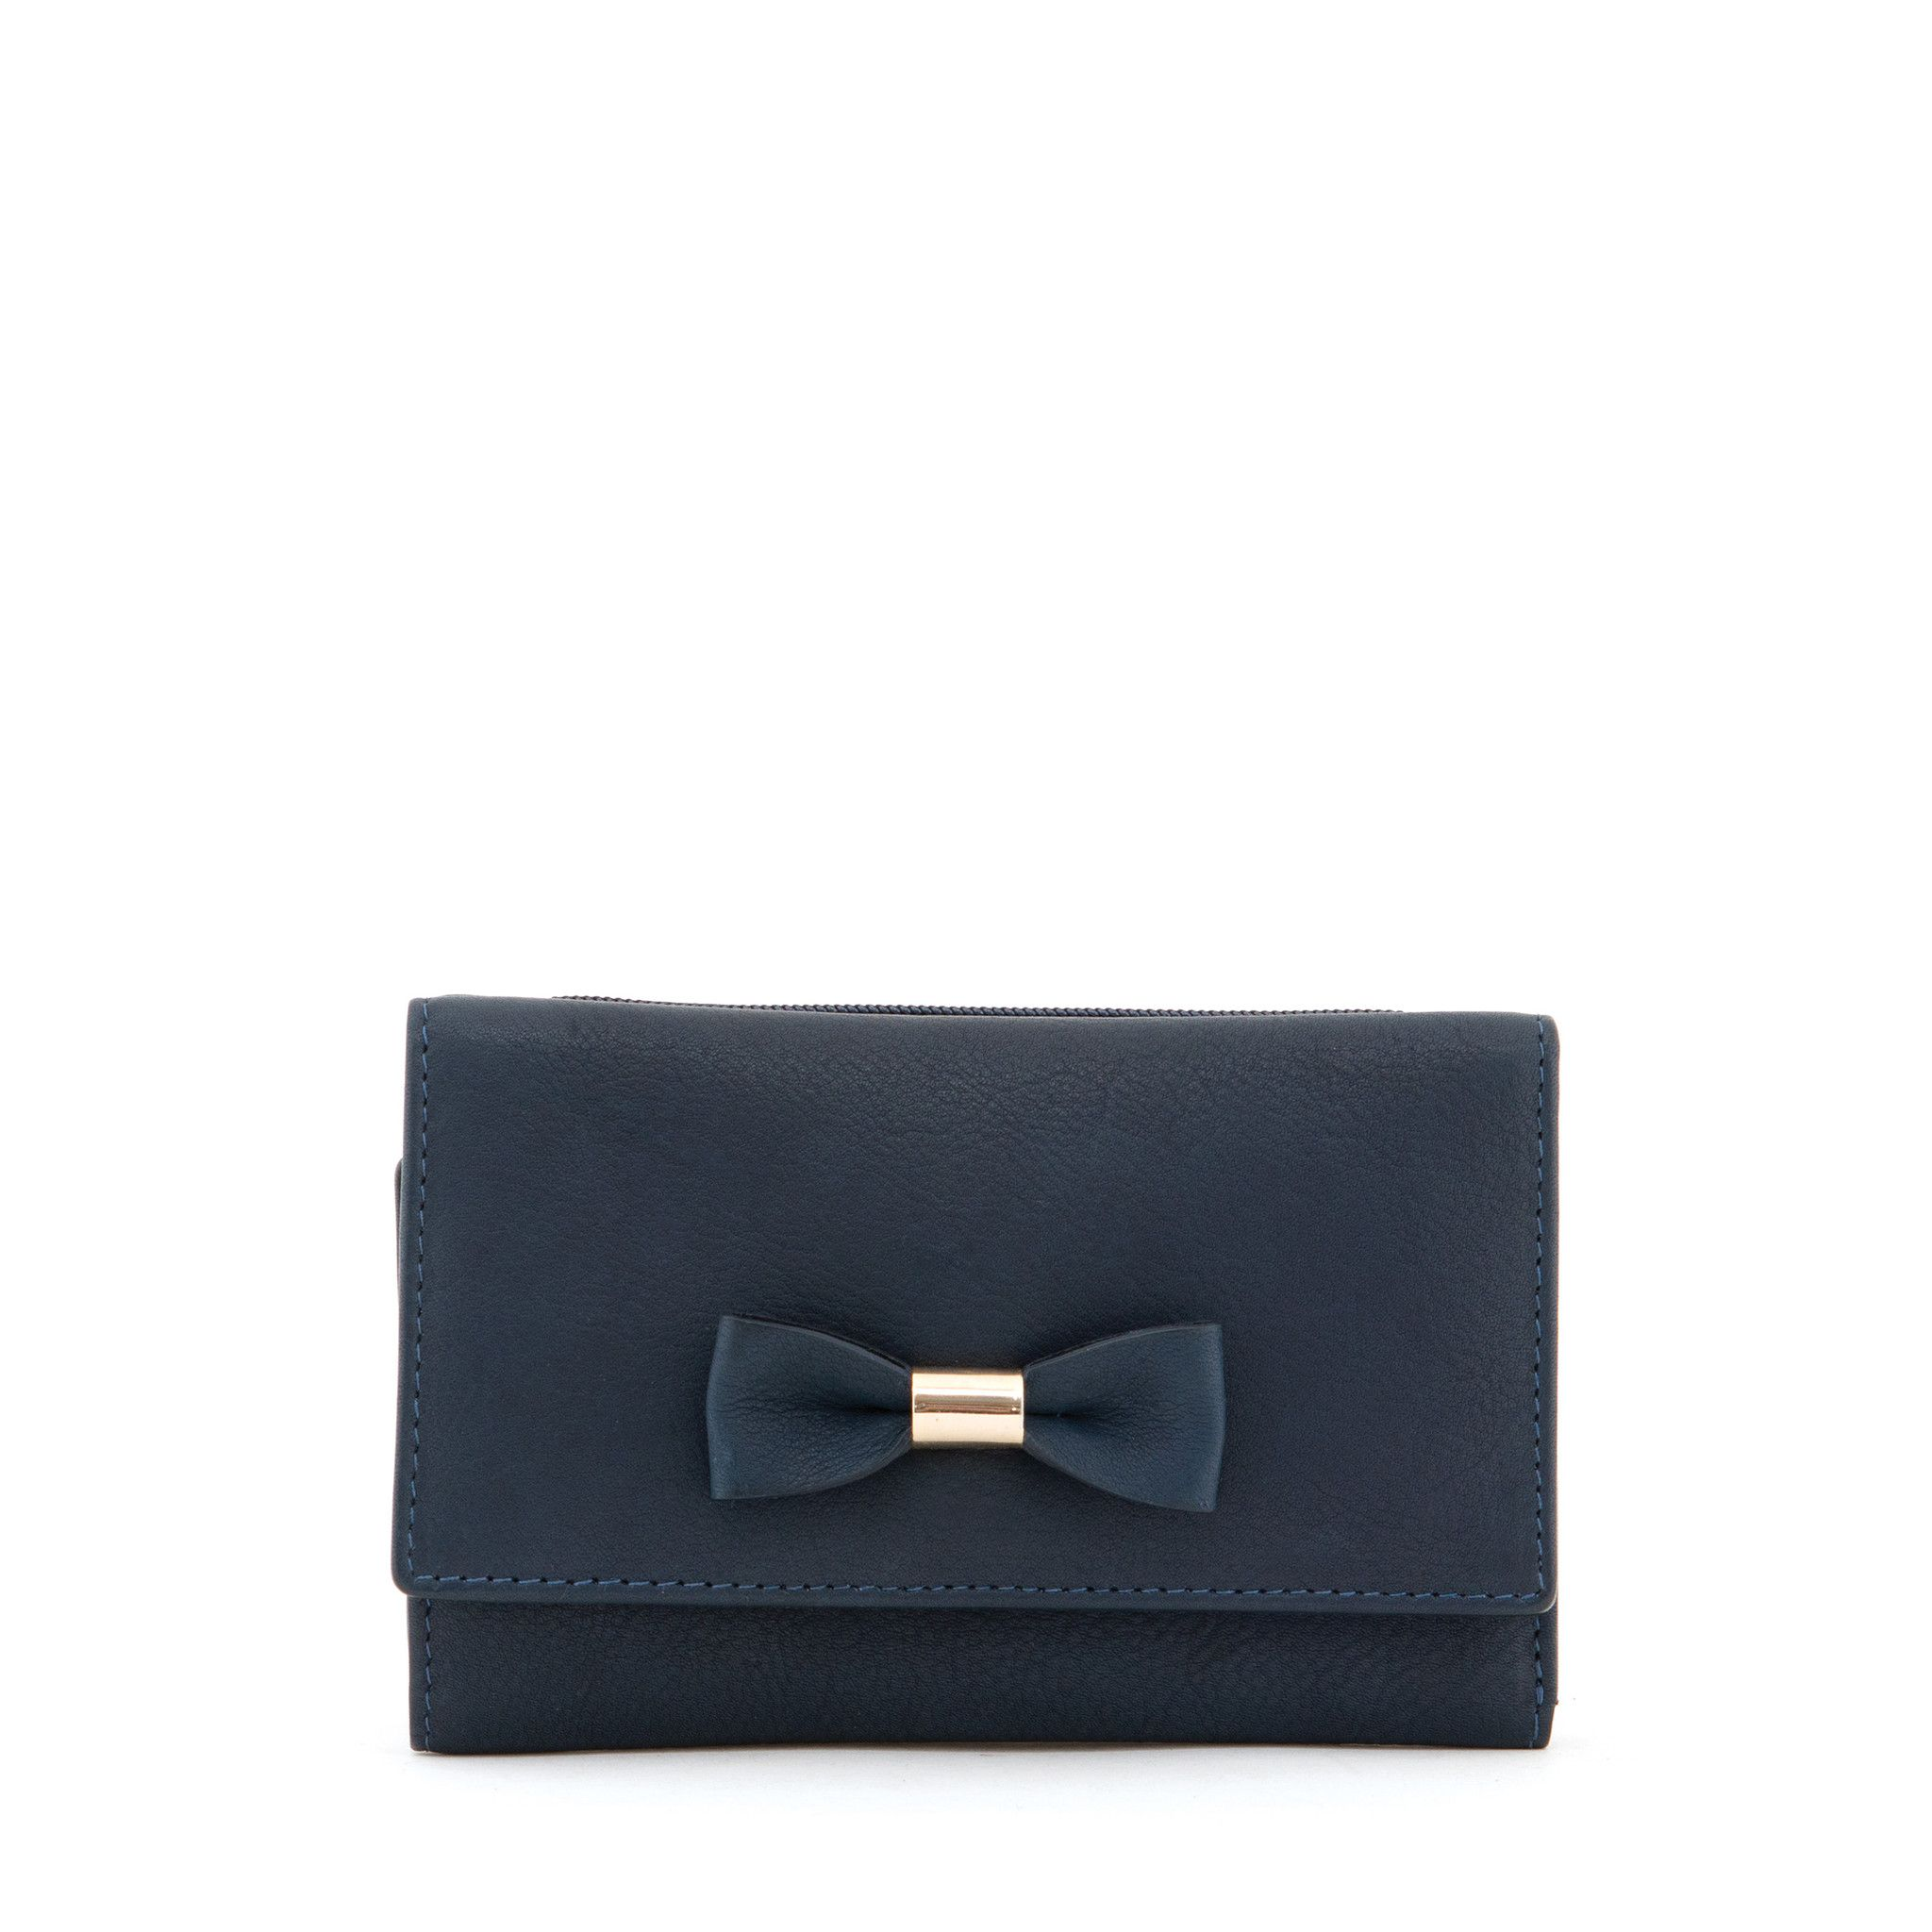 Medium Navy & Tan Leather Flap Over Bow Purse by Yoshi | Purses ...